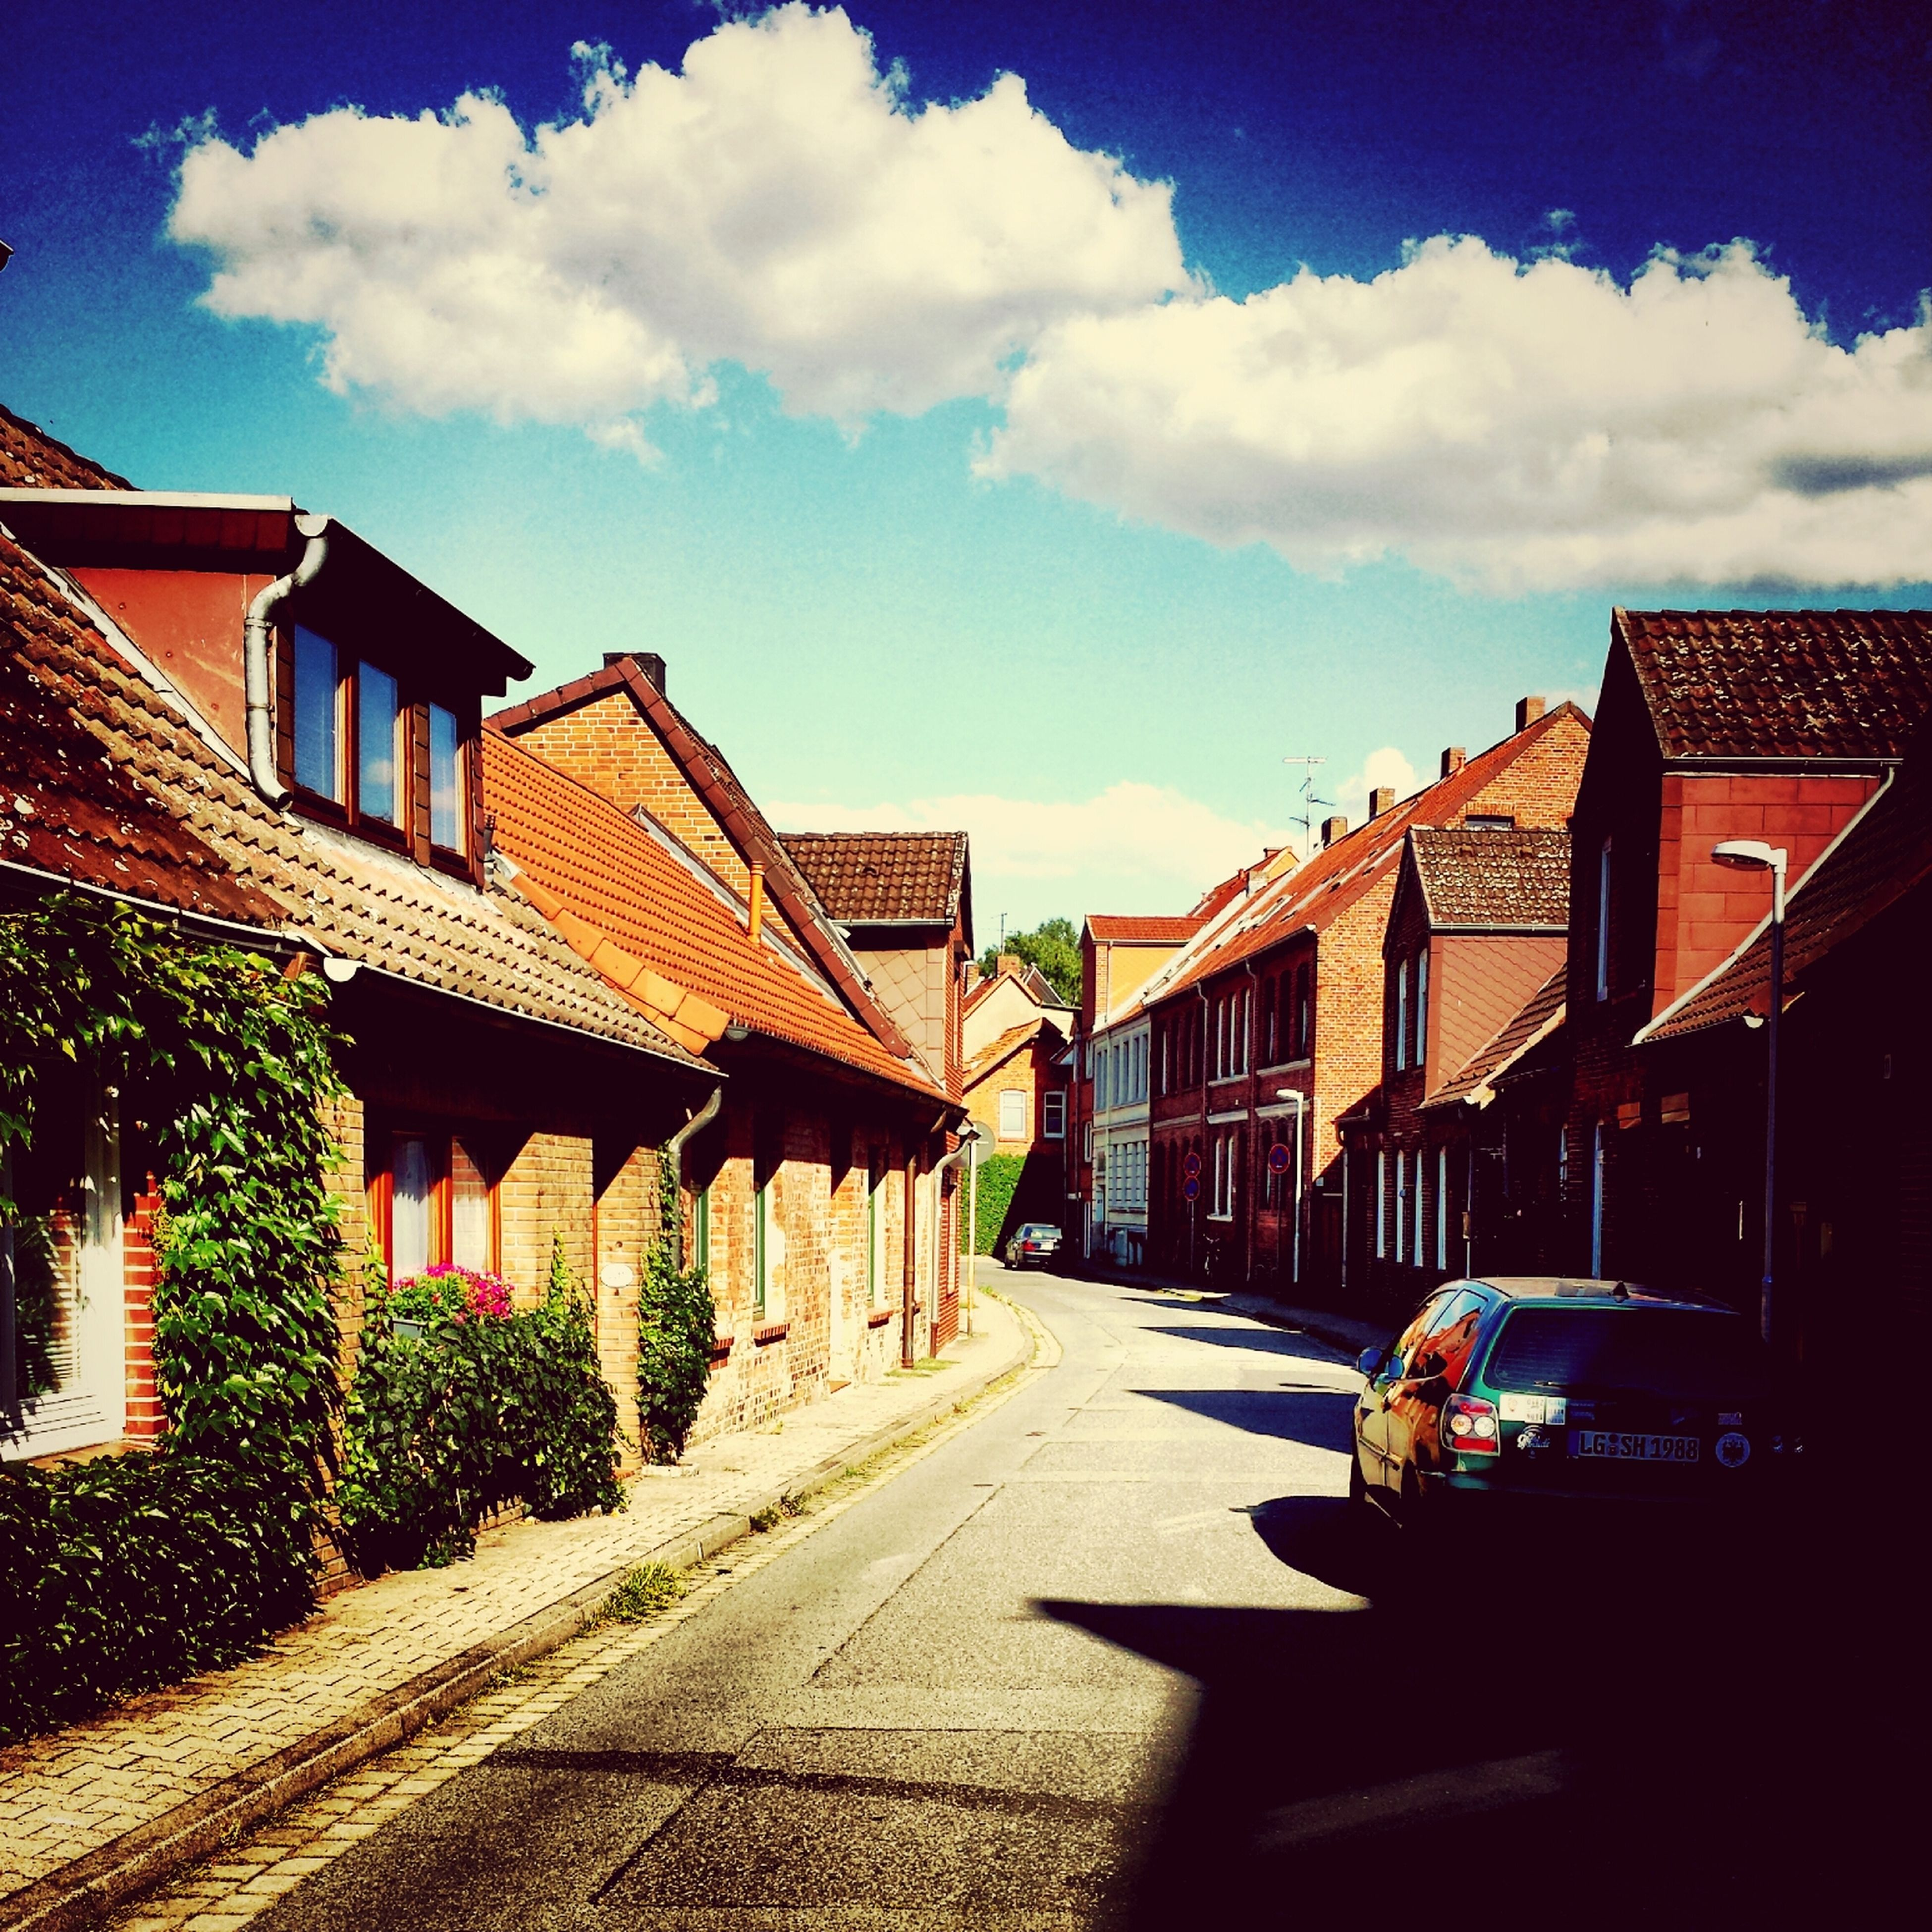 building exterior, architecture, built structure, house, sky, residential structure, the way forward, residential building, street, sunlight, roof, road, town, diminishing perspective, cloud, city, cobblestone, residential district, outdoors, vanishing point